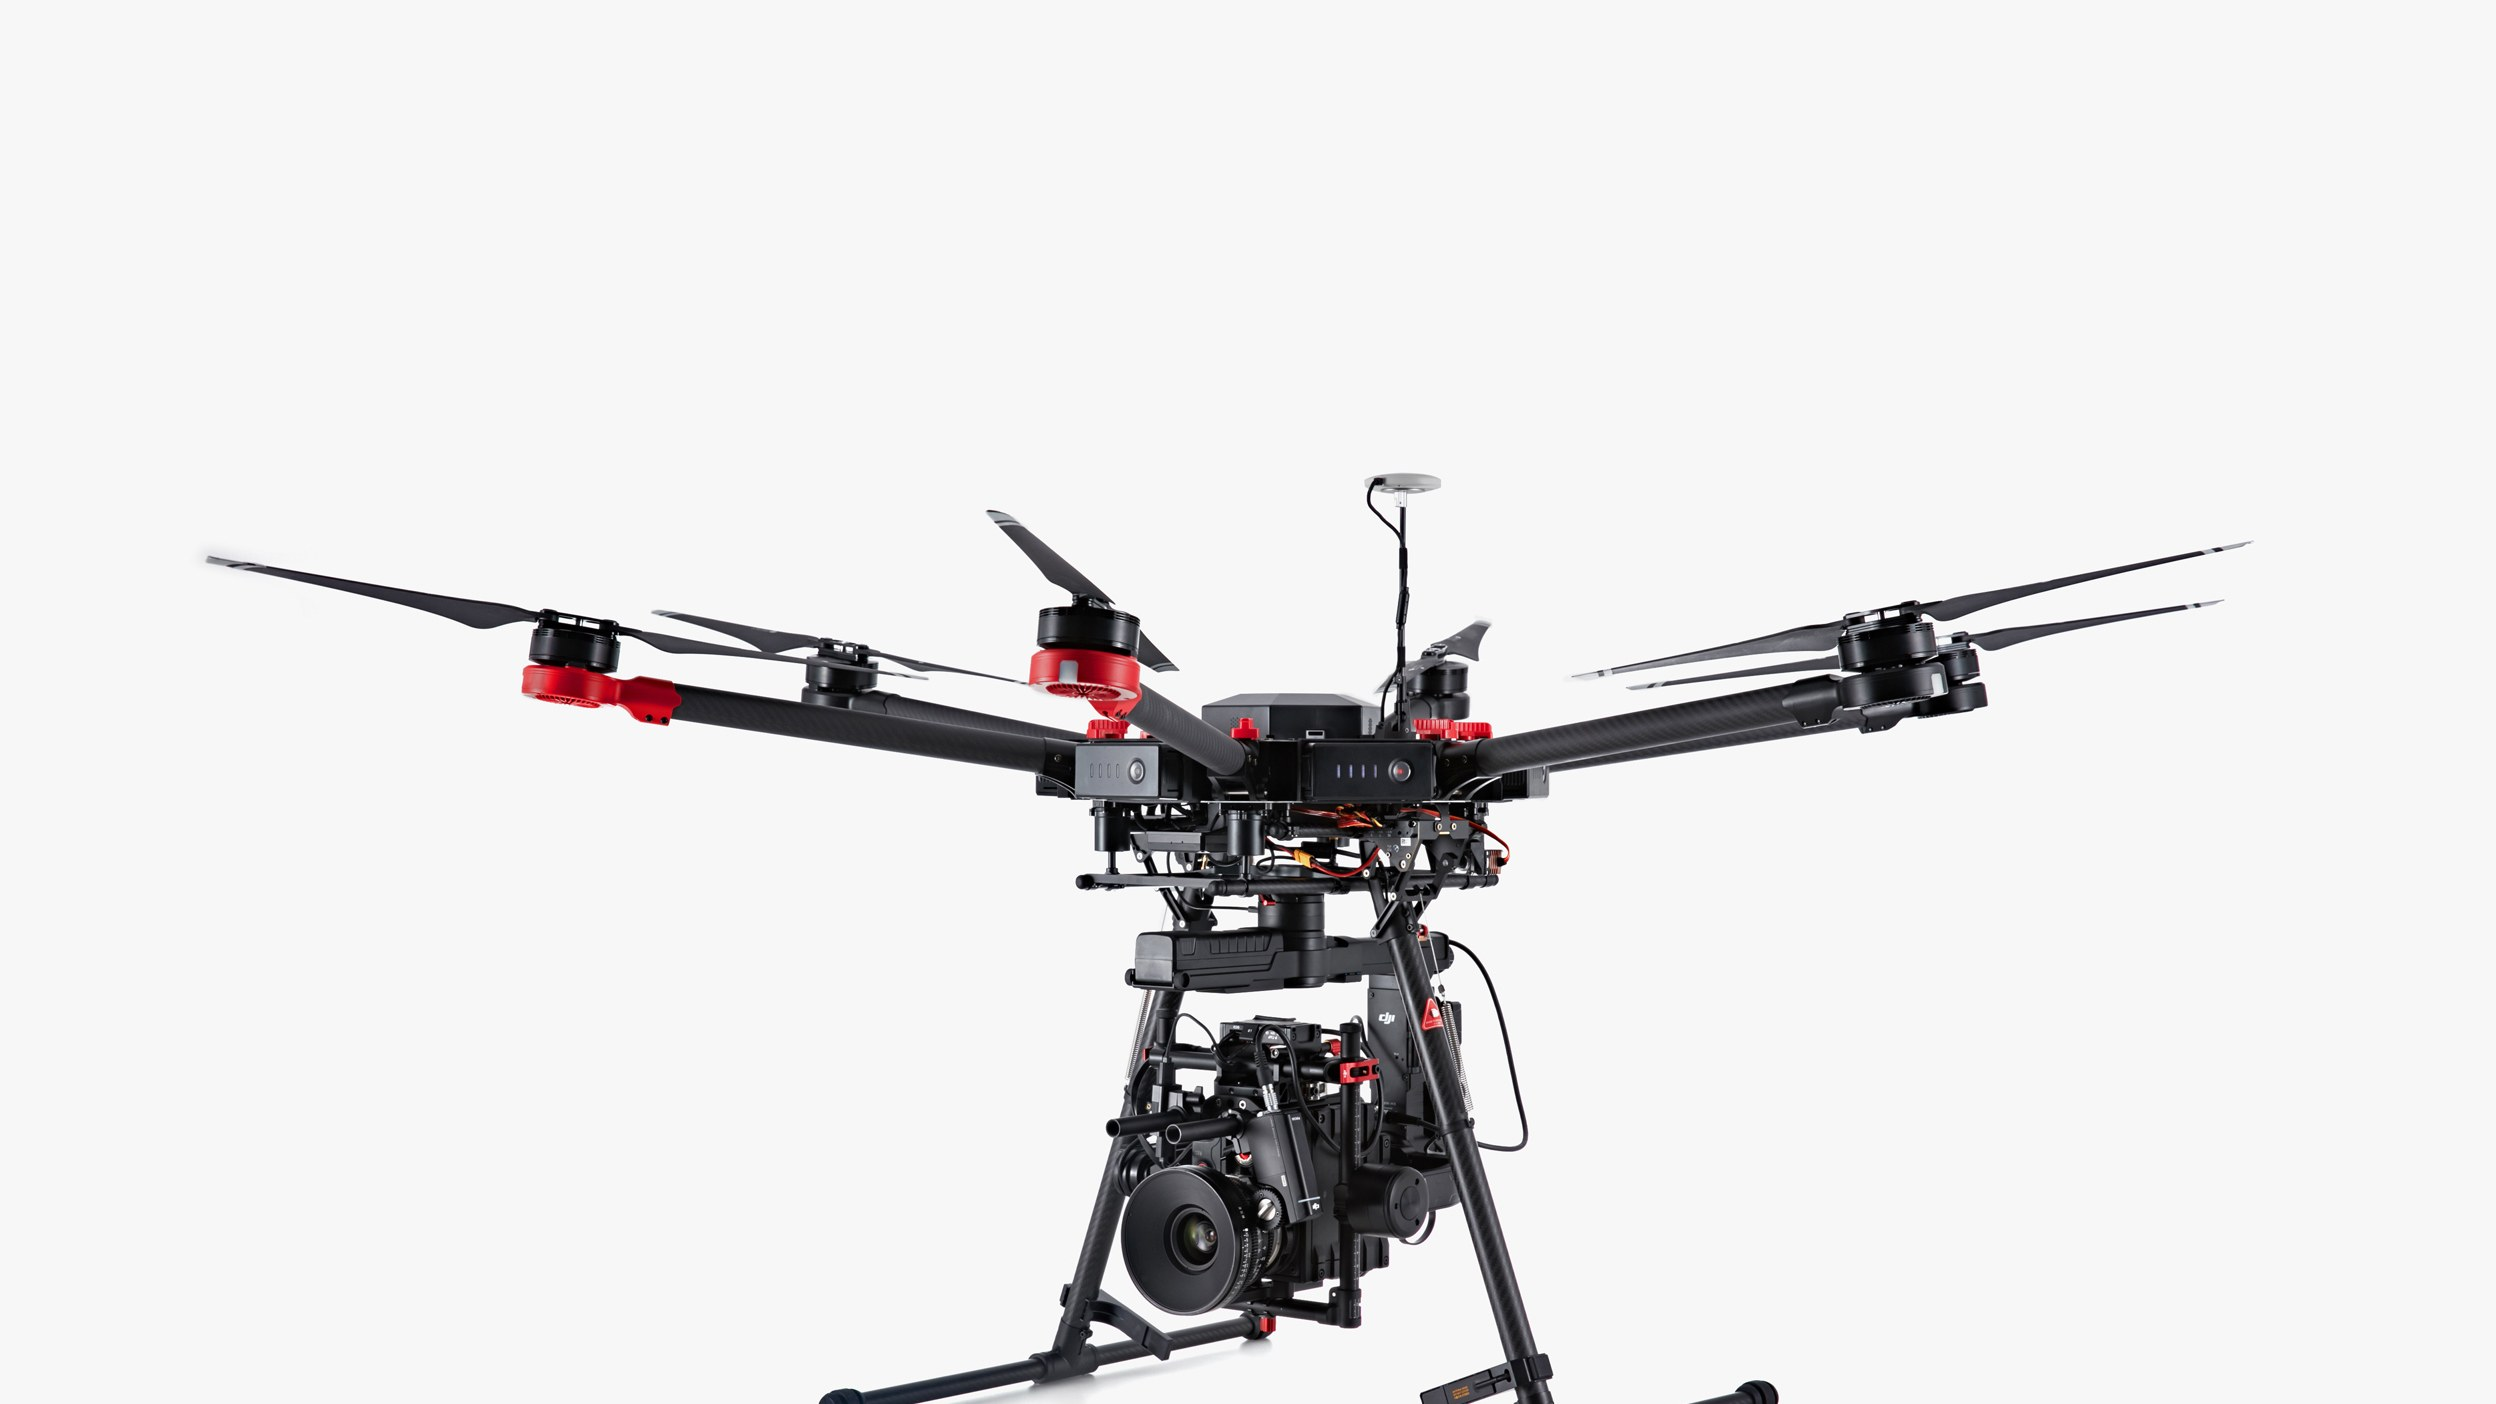 Demo Will Fly A Dji M600 Drone For Two Hours Using Fuel